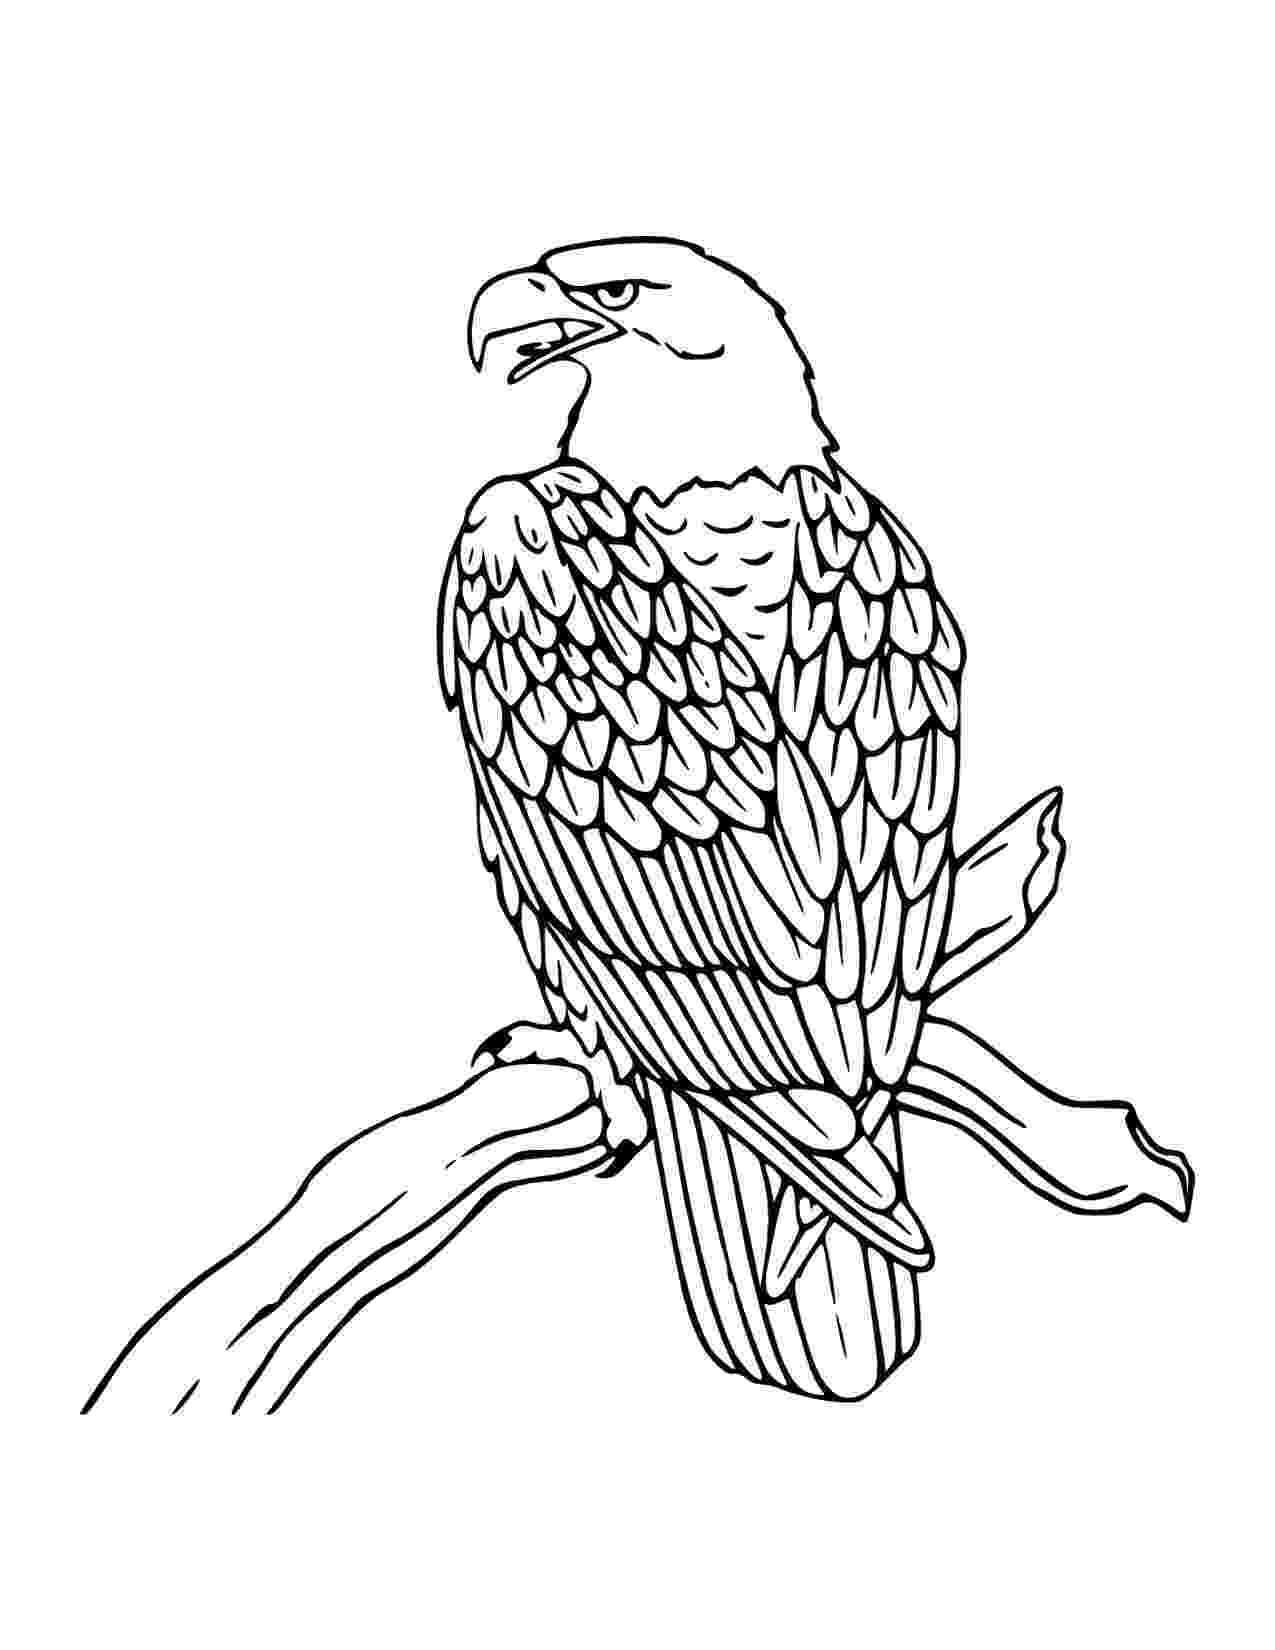 bald eagle pictures to color free printable bald eagle coloring pages for kids to color bald eagle pictures